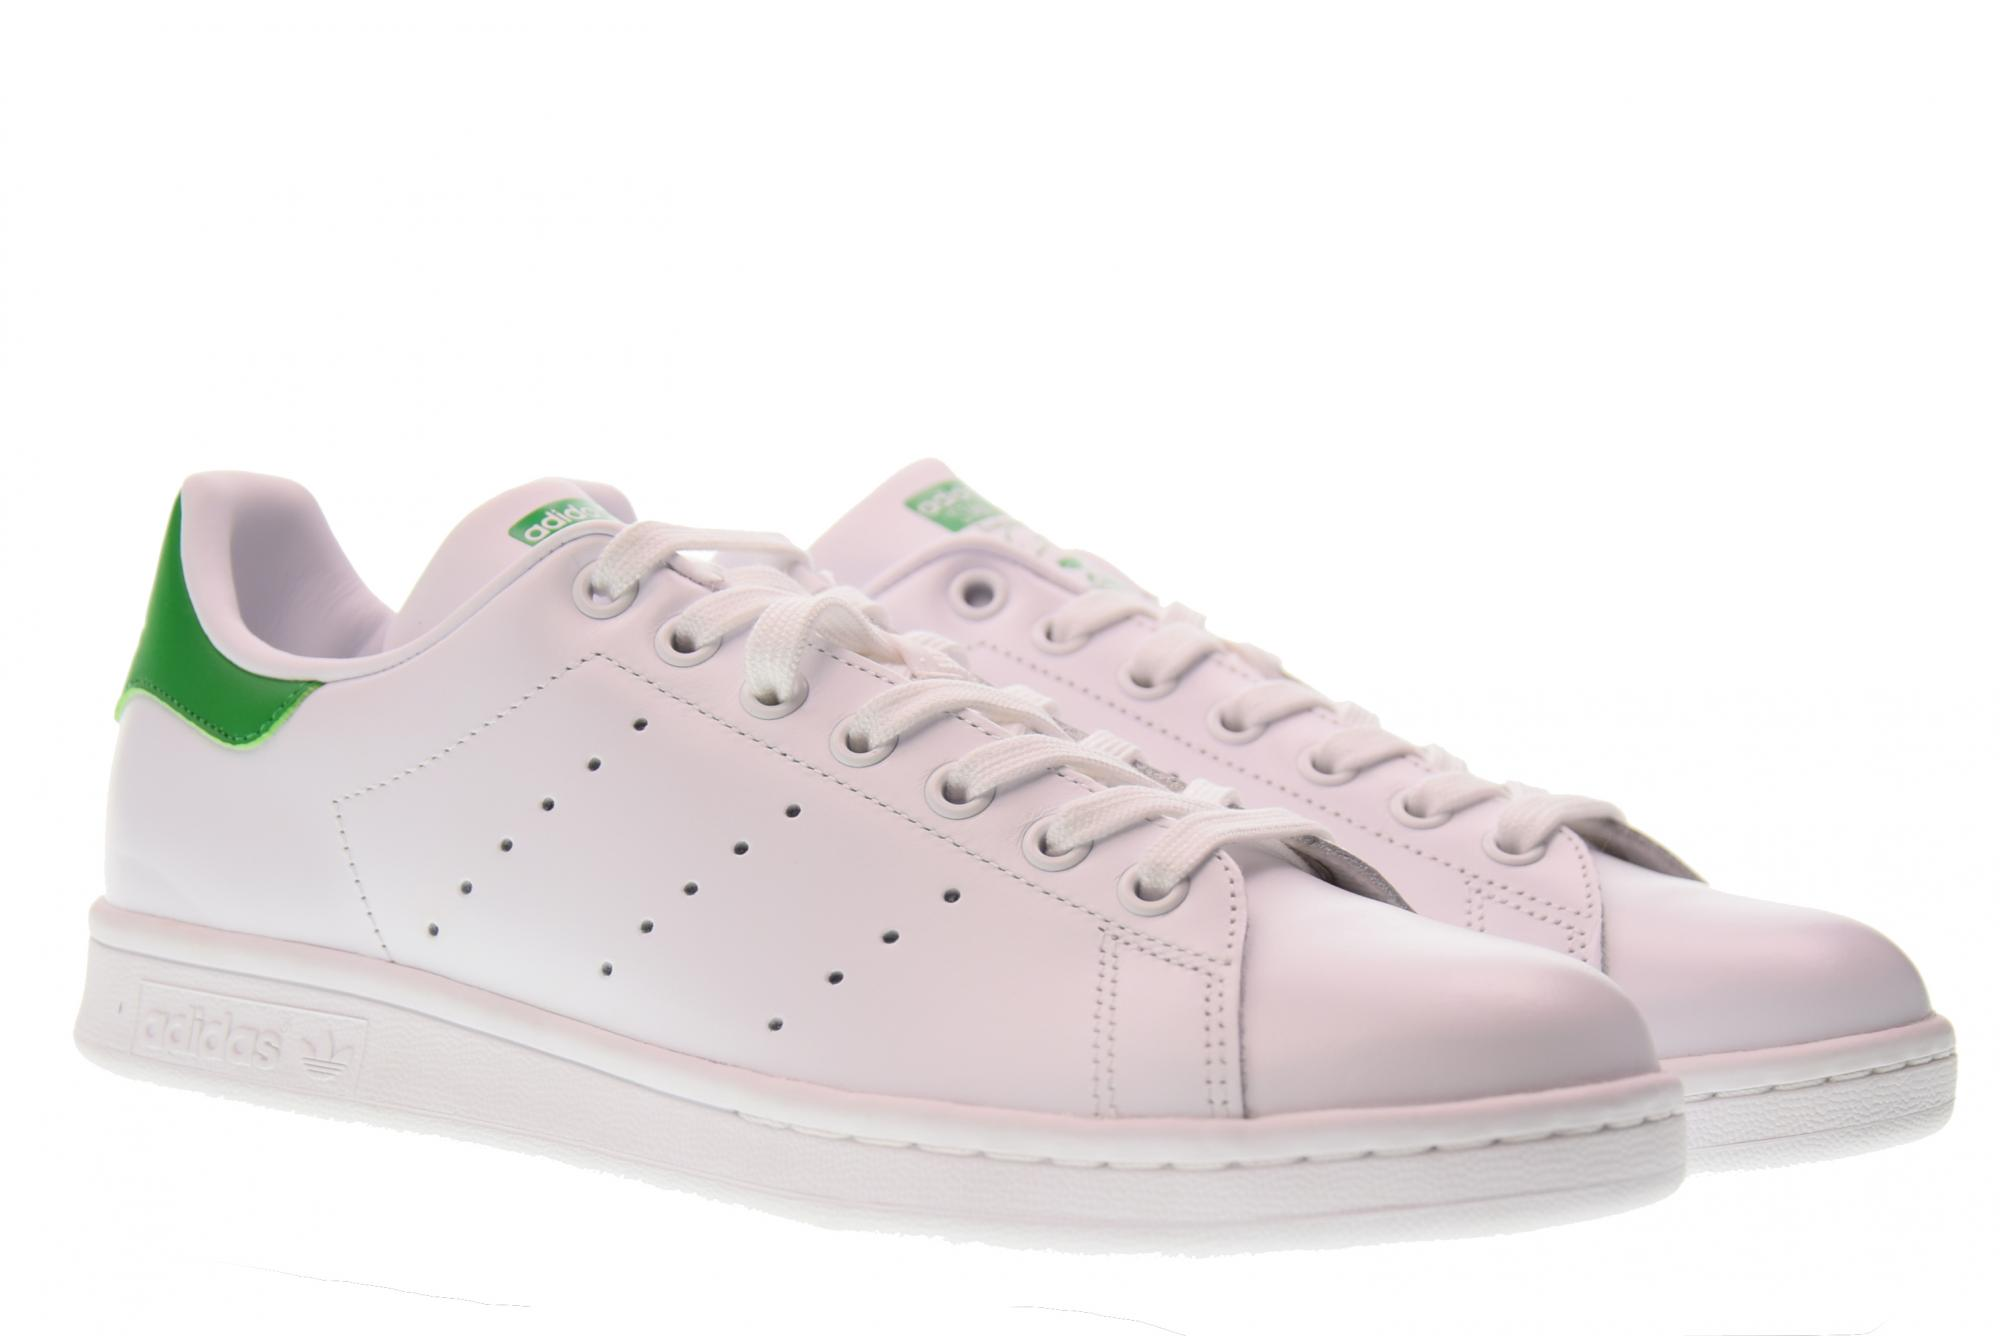 new arrival ab885 86102 Adidas scarpe unisex sneakers basse M20324 STAN SMITH A18